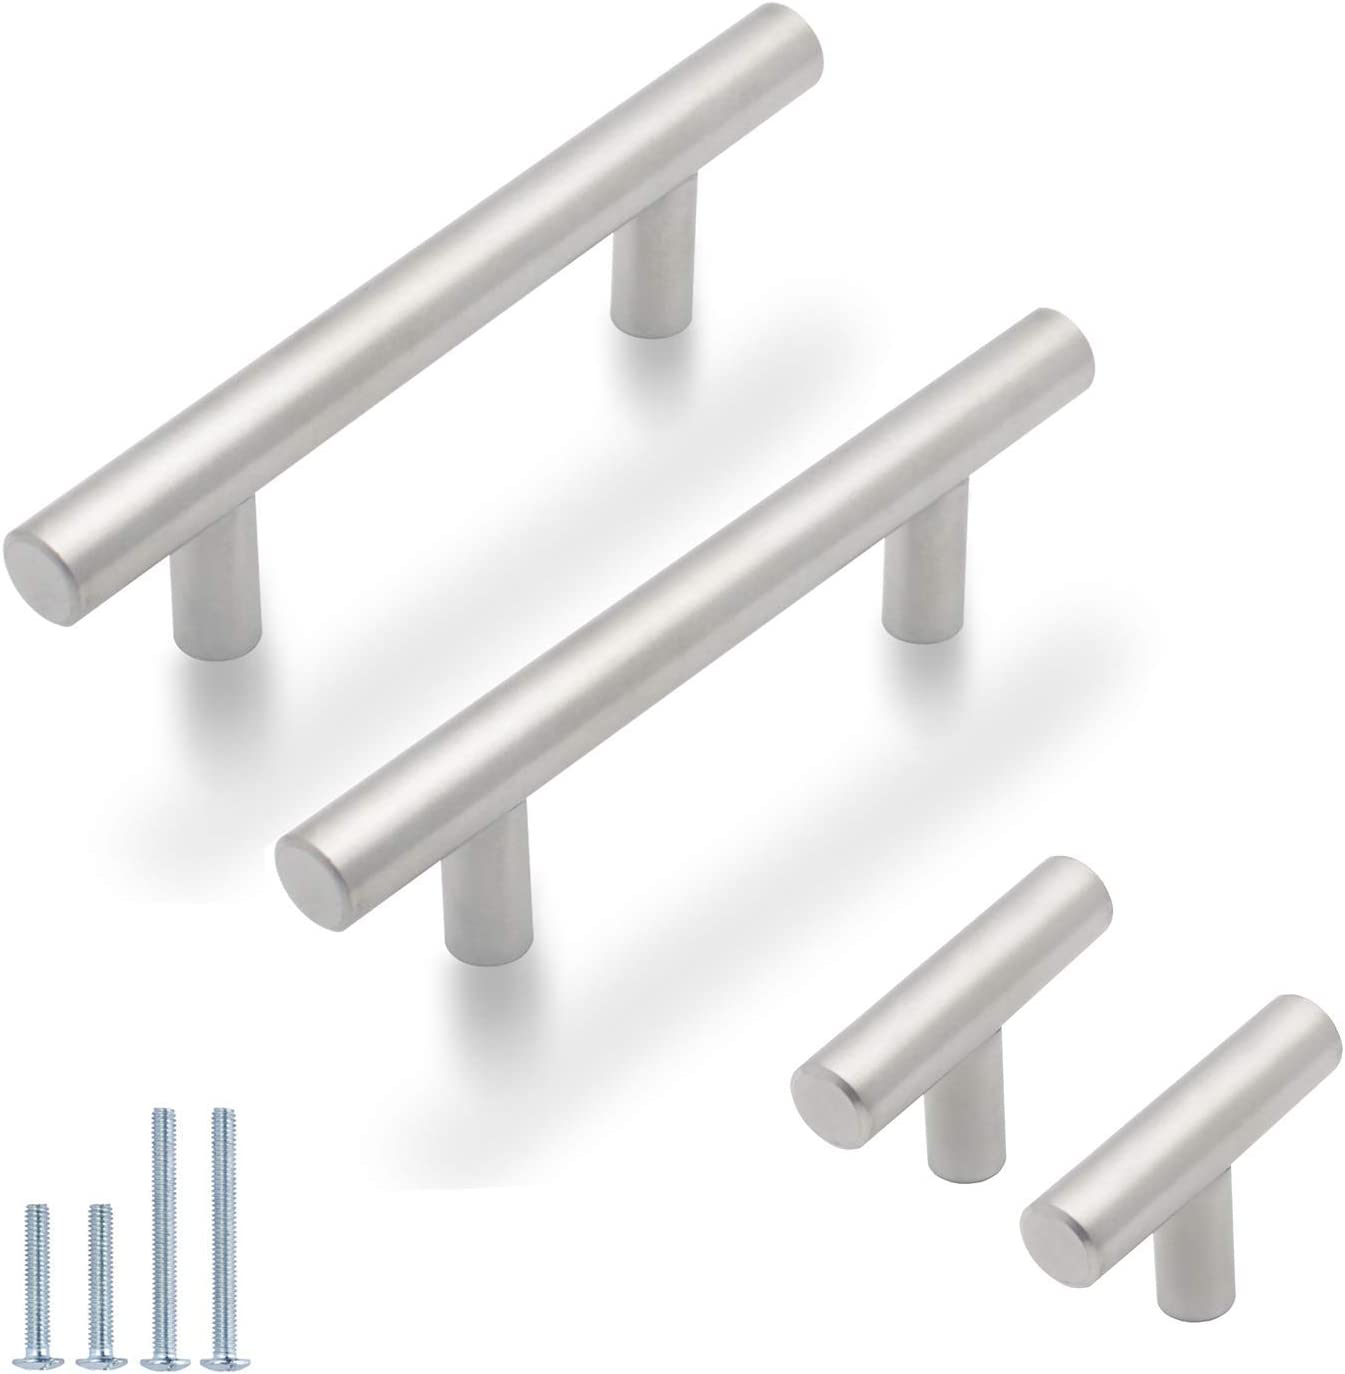 Probrico 30 Pack  3 Inch Euro T Bar Cabinet Pulls and 10 Pack  Single Hole Cabinet Knobs Bundle, Stainless Steel Kitchen Cabinet Handles Satin Nickel Drawer Pulls Knobs